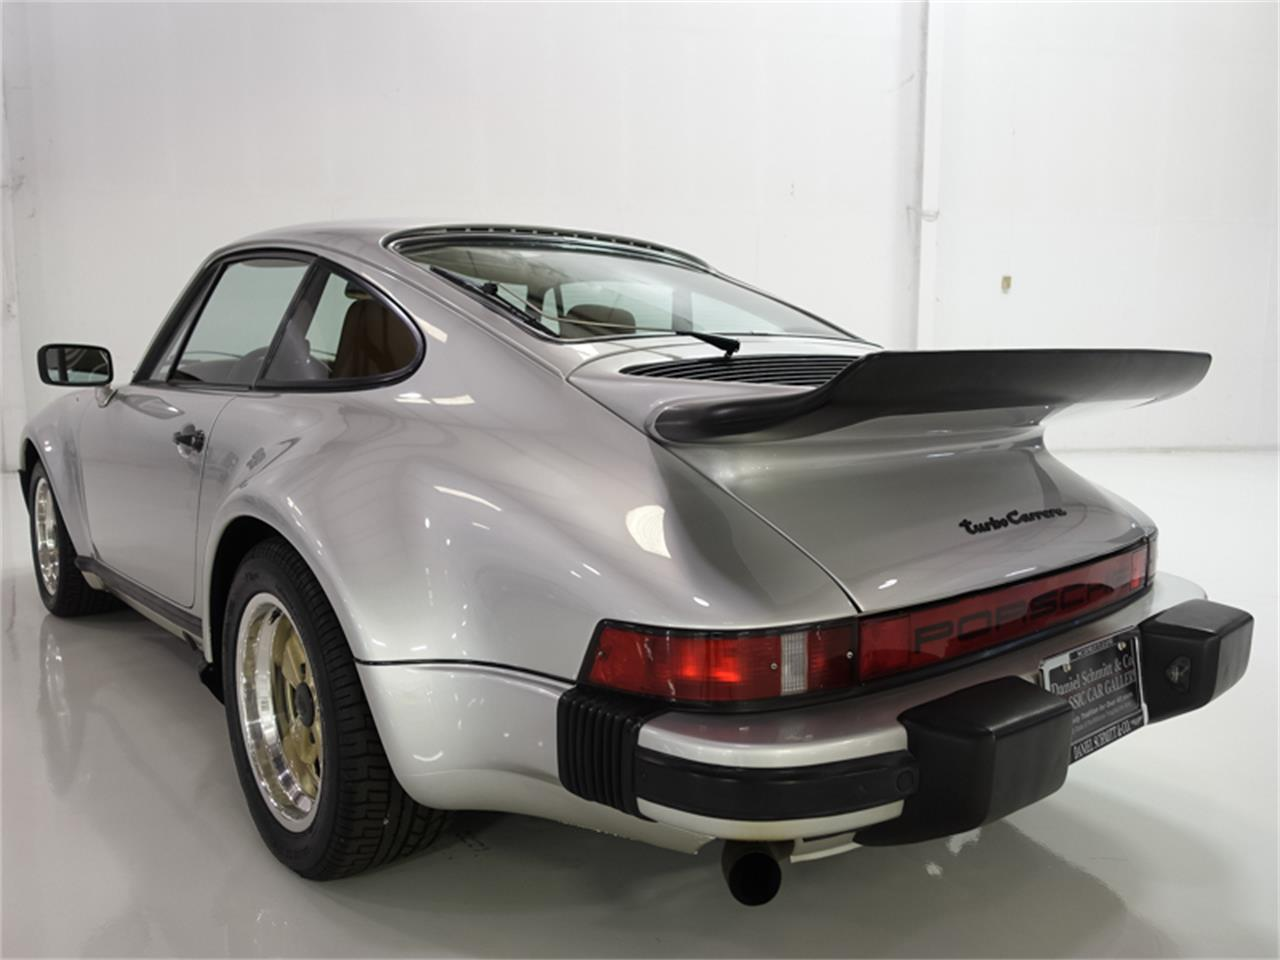 Large Picture of 1976 Porsche 930 Turbo Offered by Daniel Schmitt & Co. - FXKC